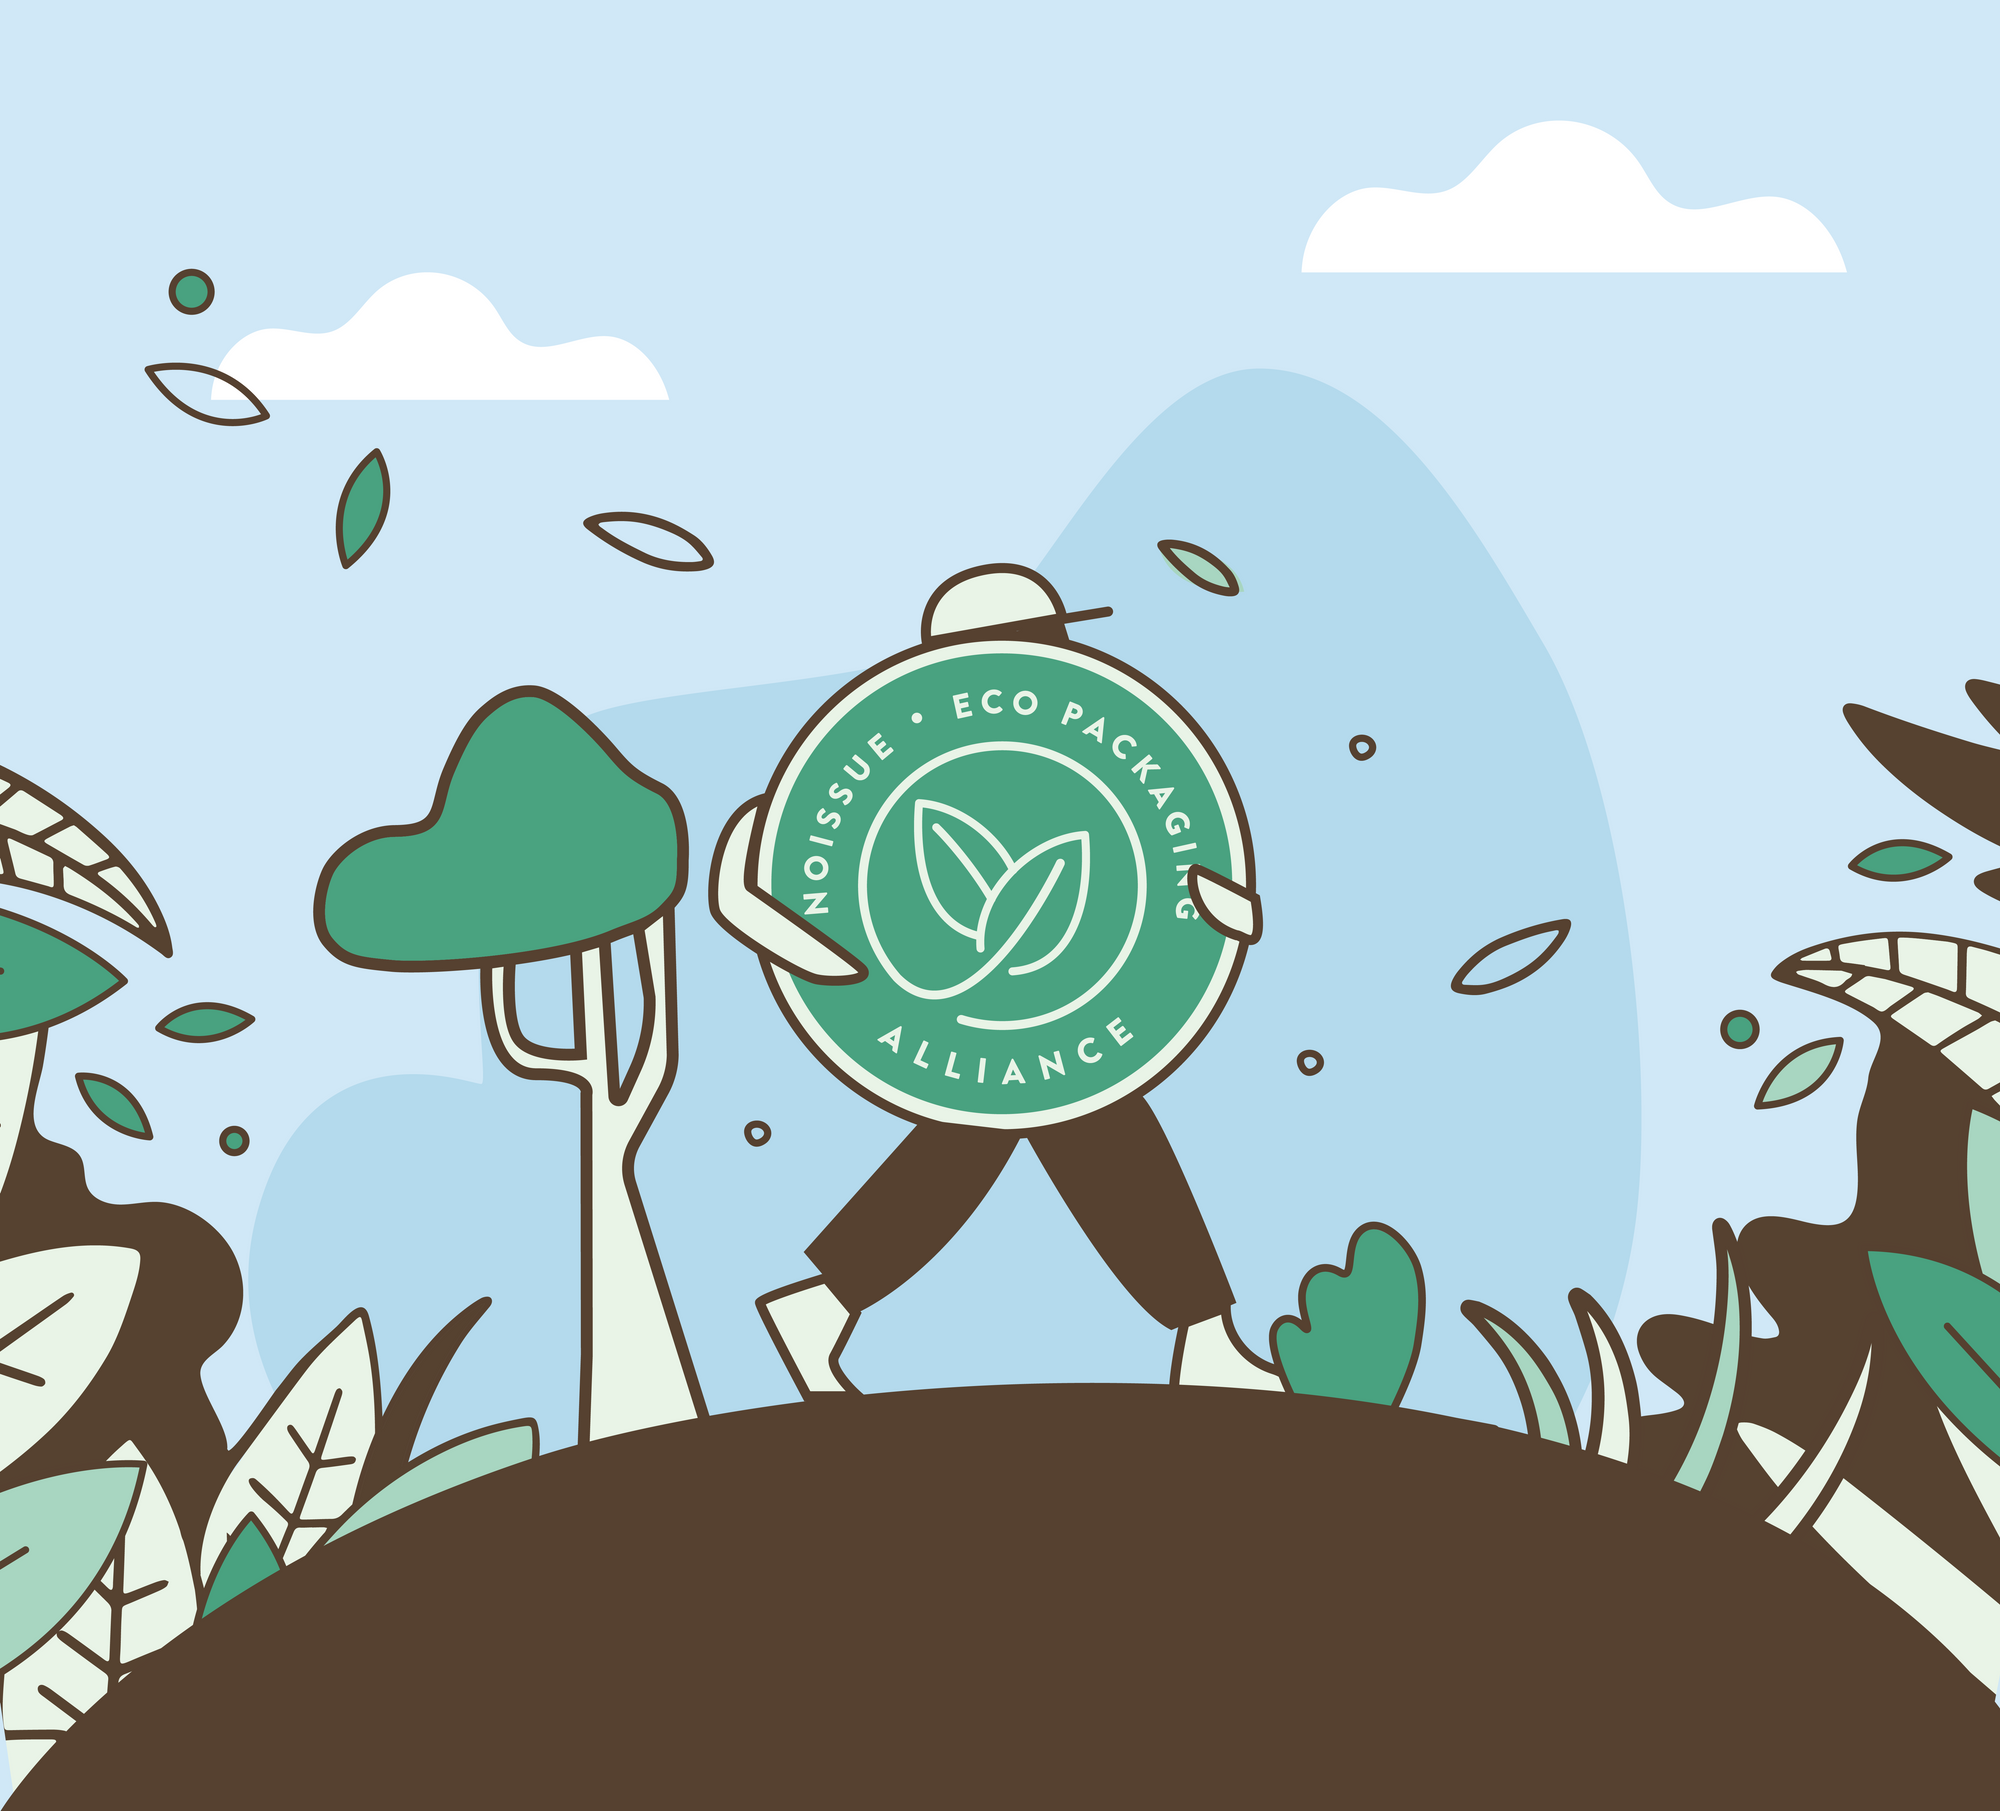 A Complete Guide to Joining noissue's Eco-Alliance